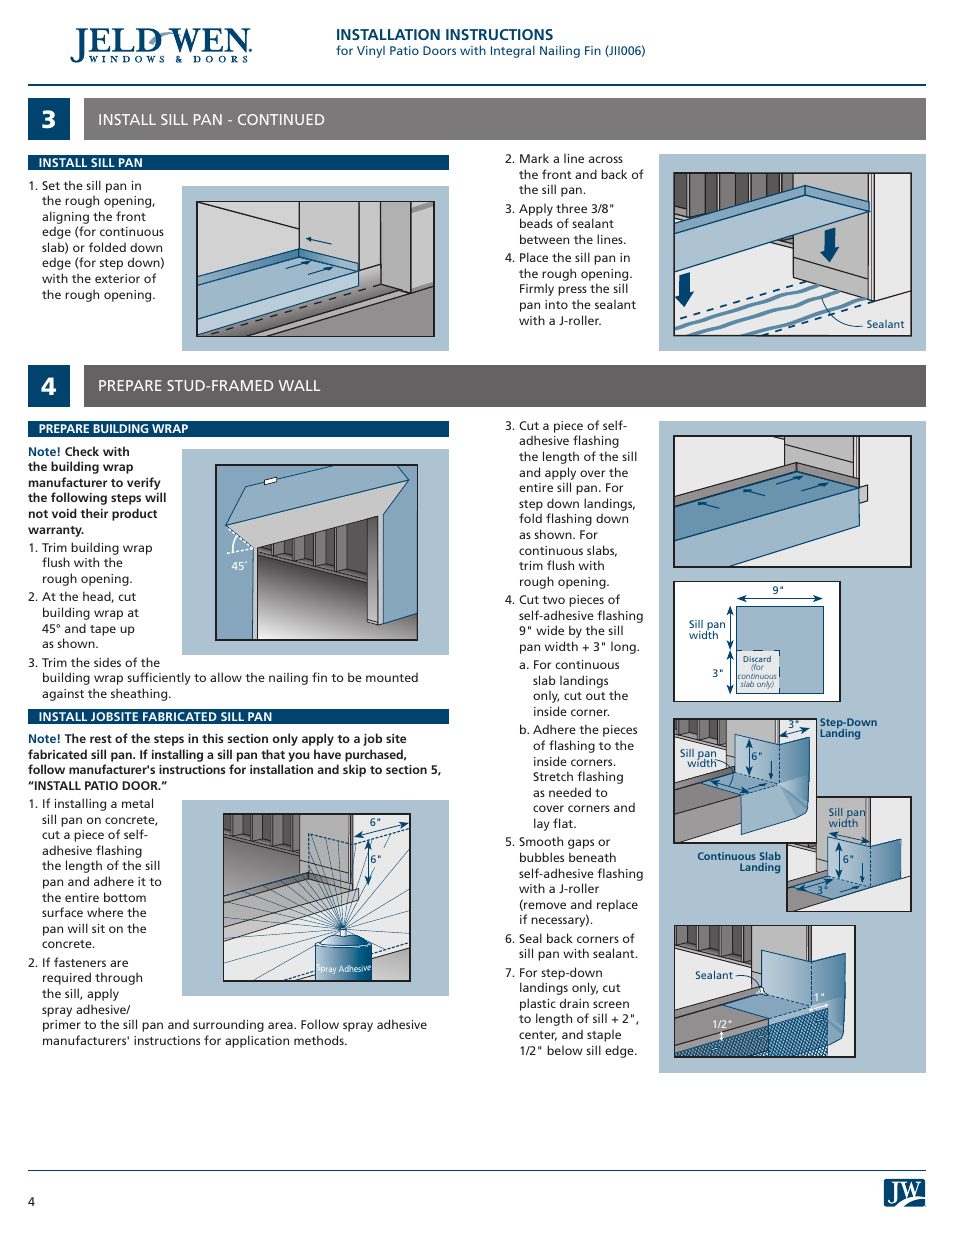 Jeld wen patio doors installation instructions for Buy jeld wen windows online